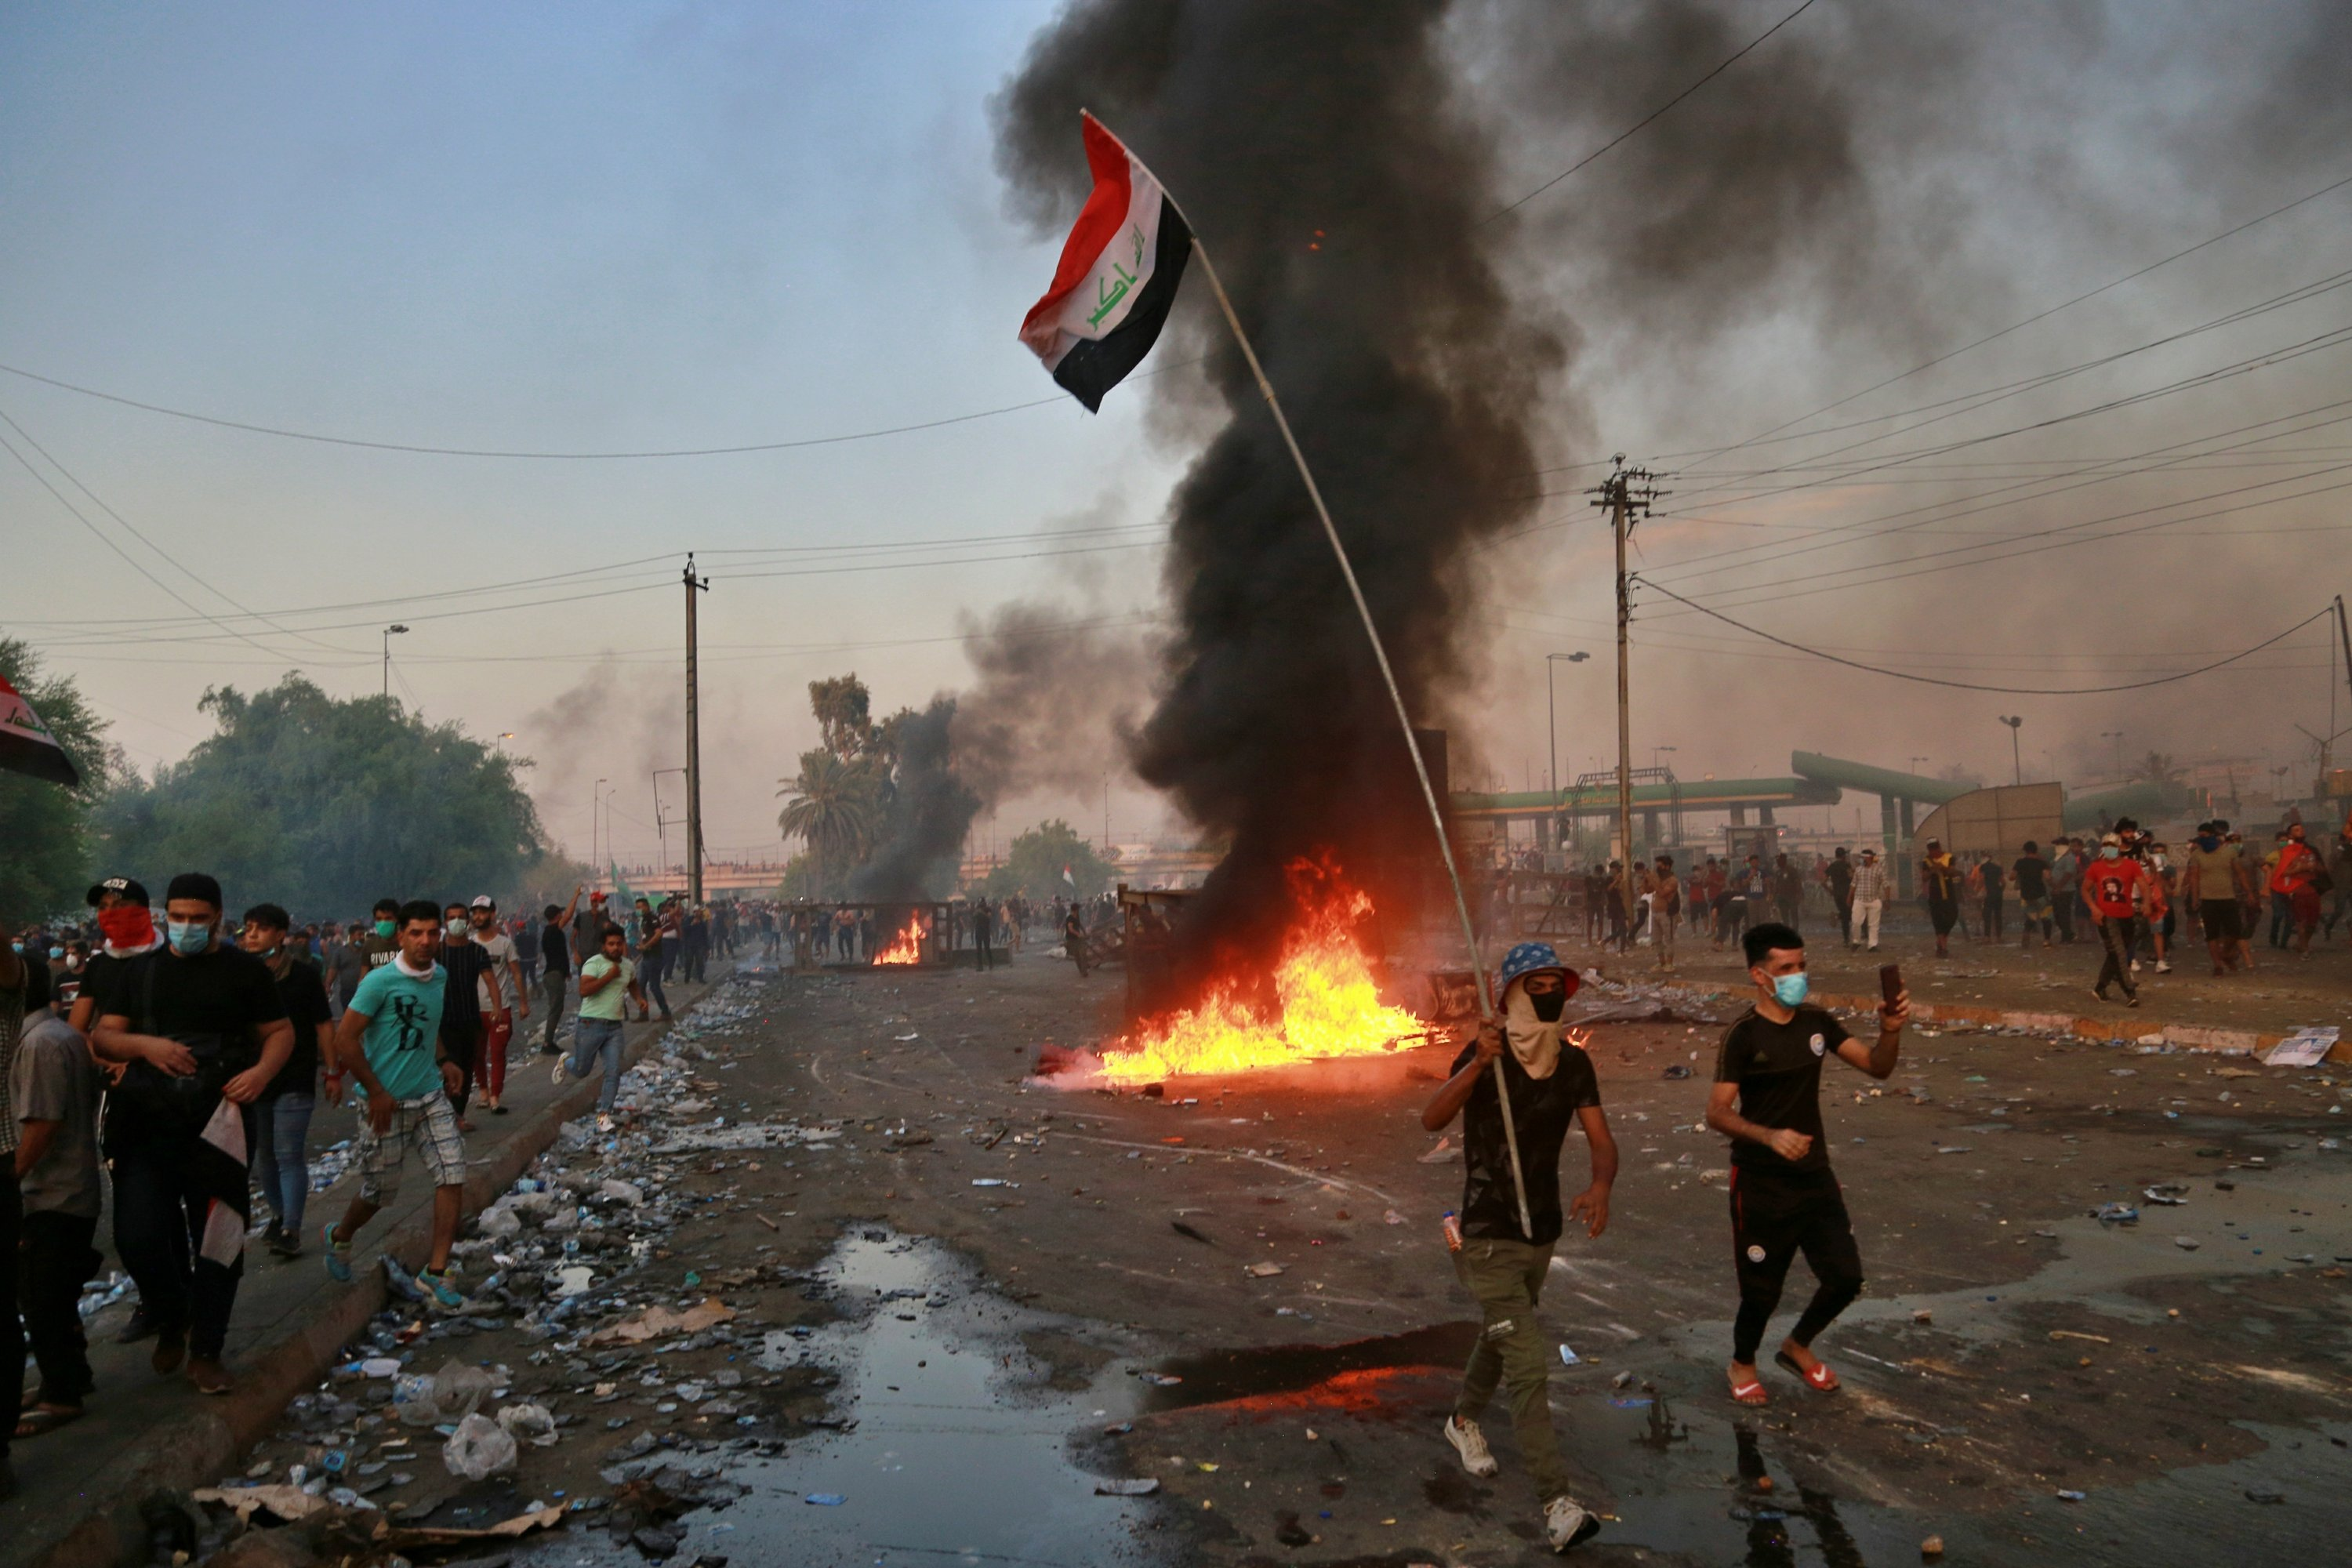 The Latest: Iraqi officials say 10 more protesters killed